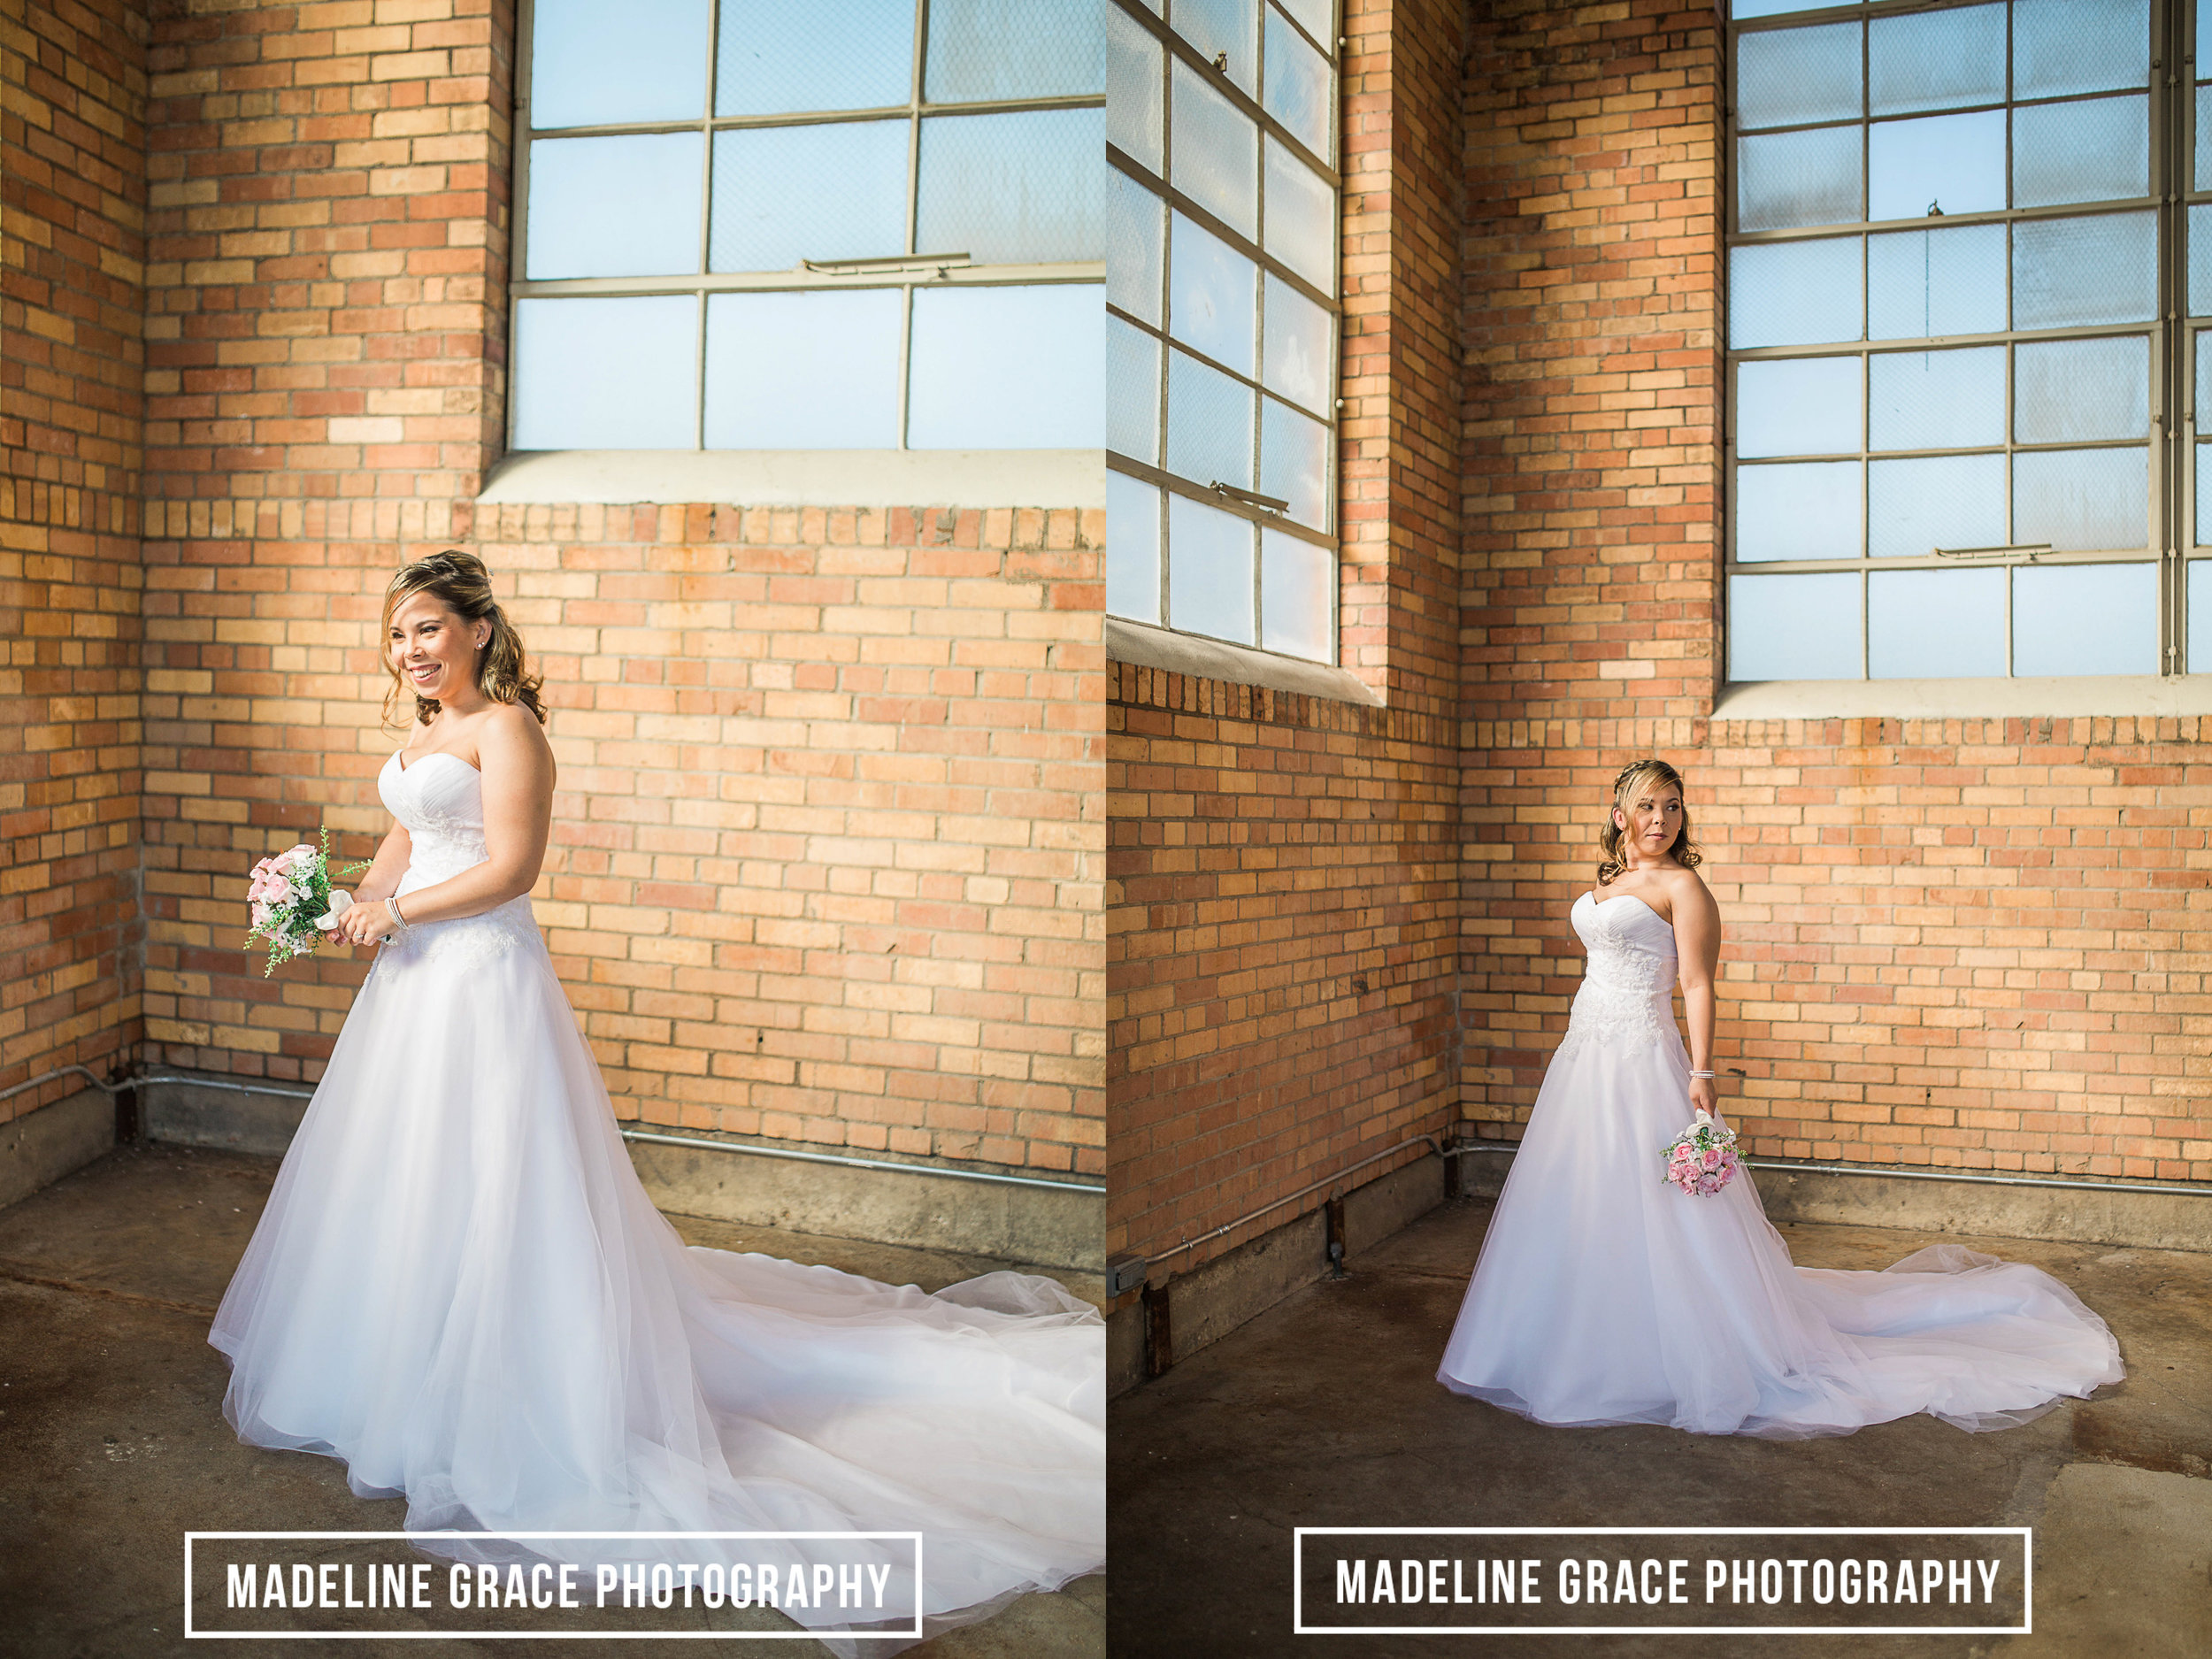 MGP-Sarah-Bridals-Blog-1 copy.jpg